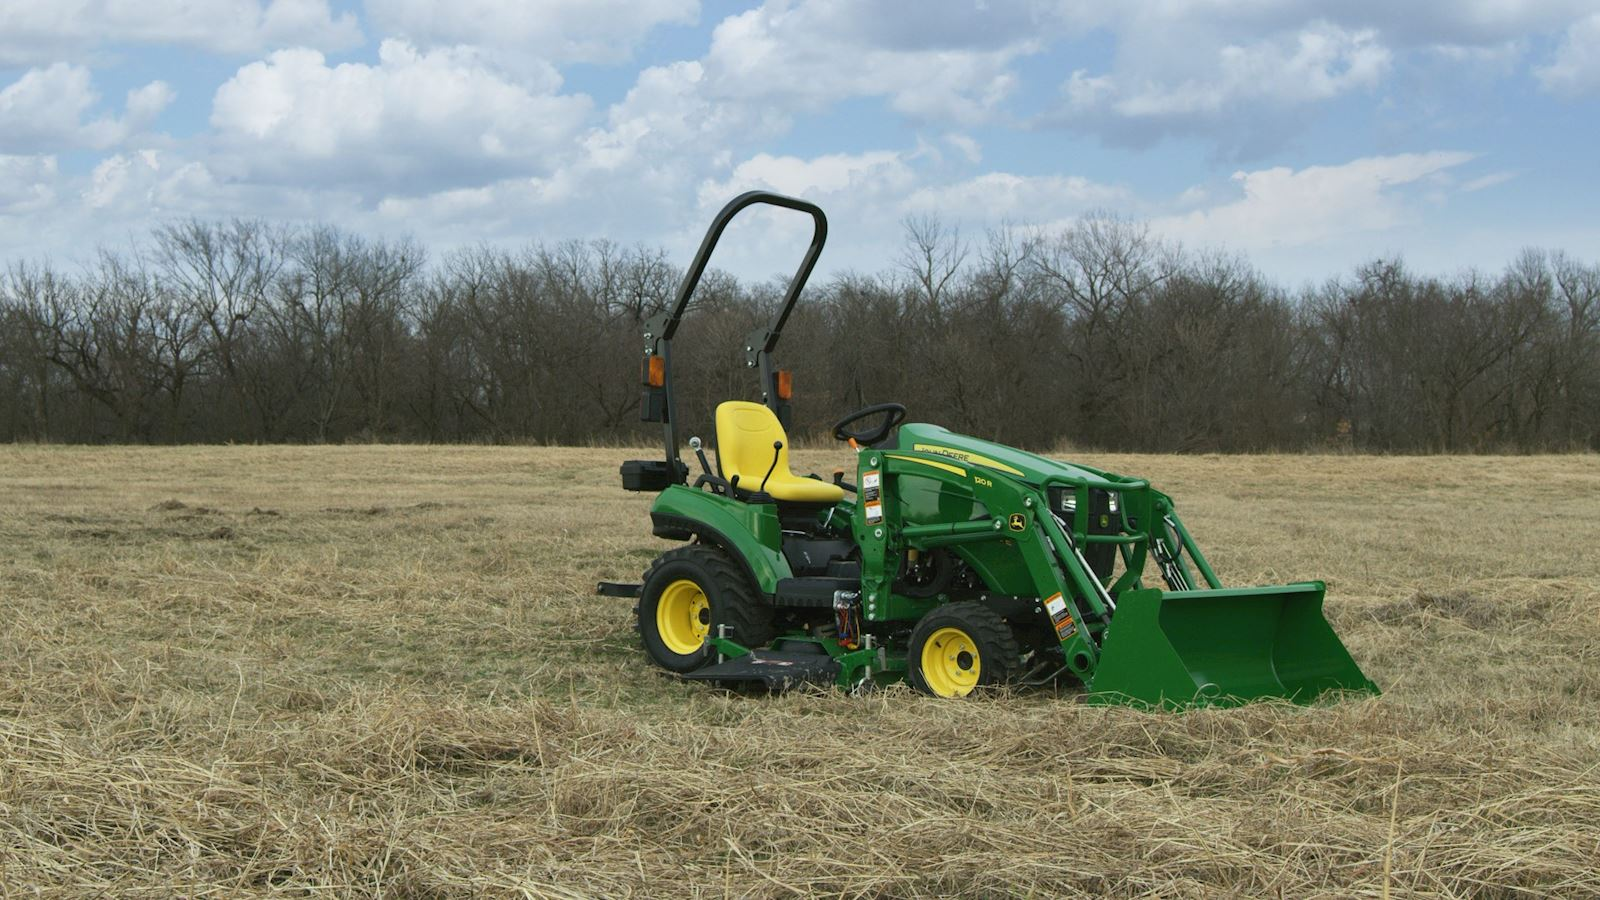 John Deere 1023E Silver Mowing Package is just $205 per month at P&K!